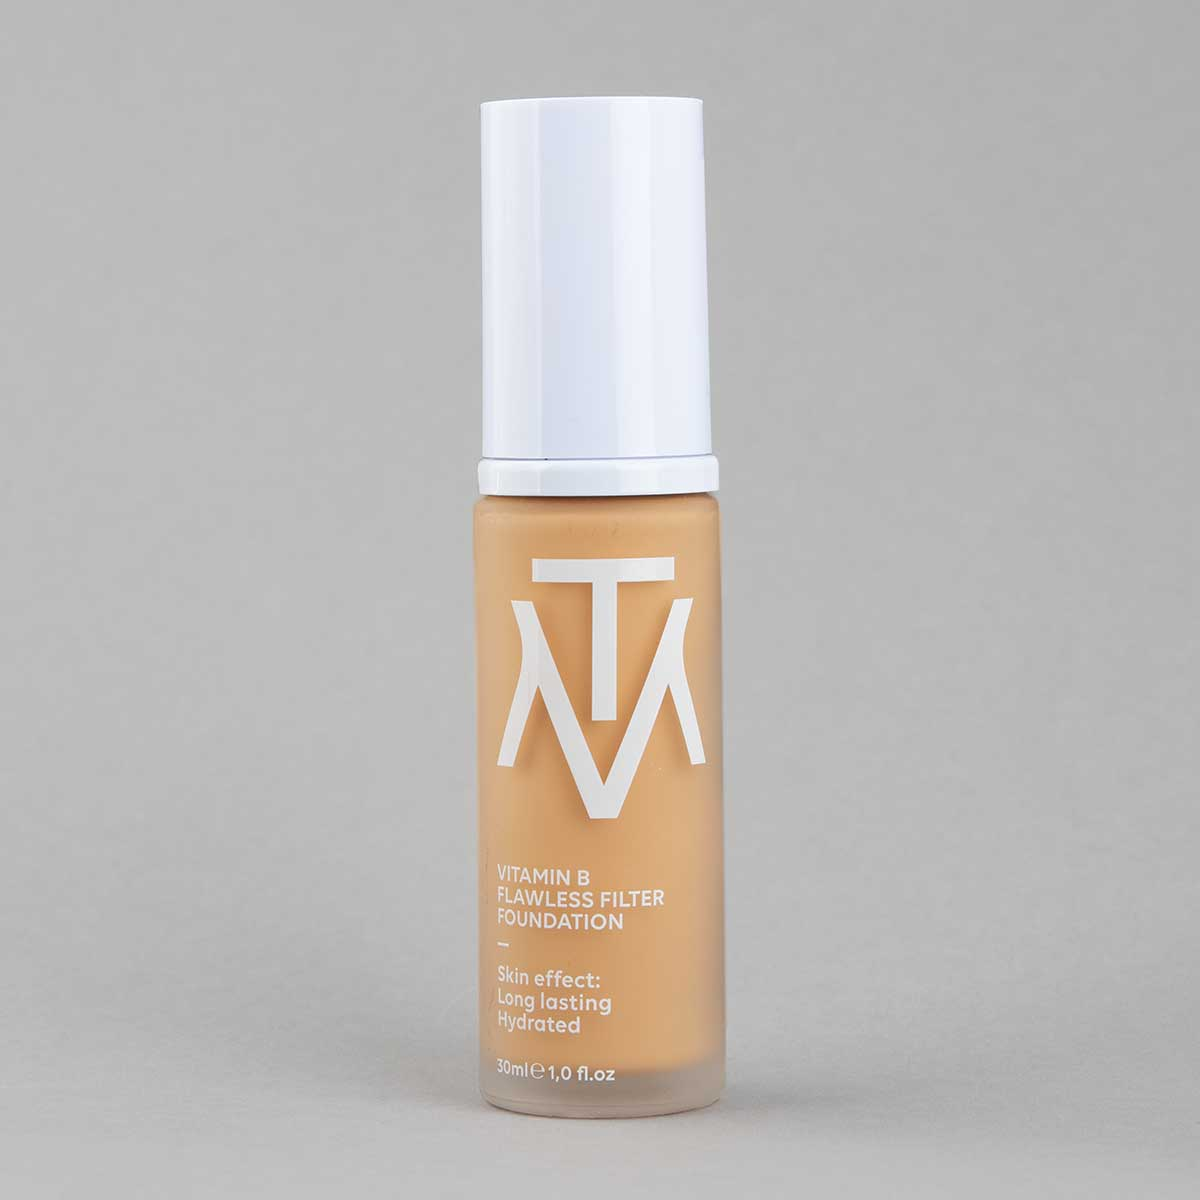 Vitamin B Flawless Filter Foundation N4